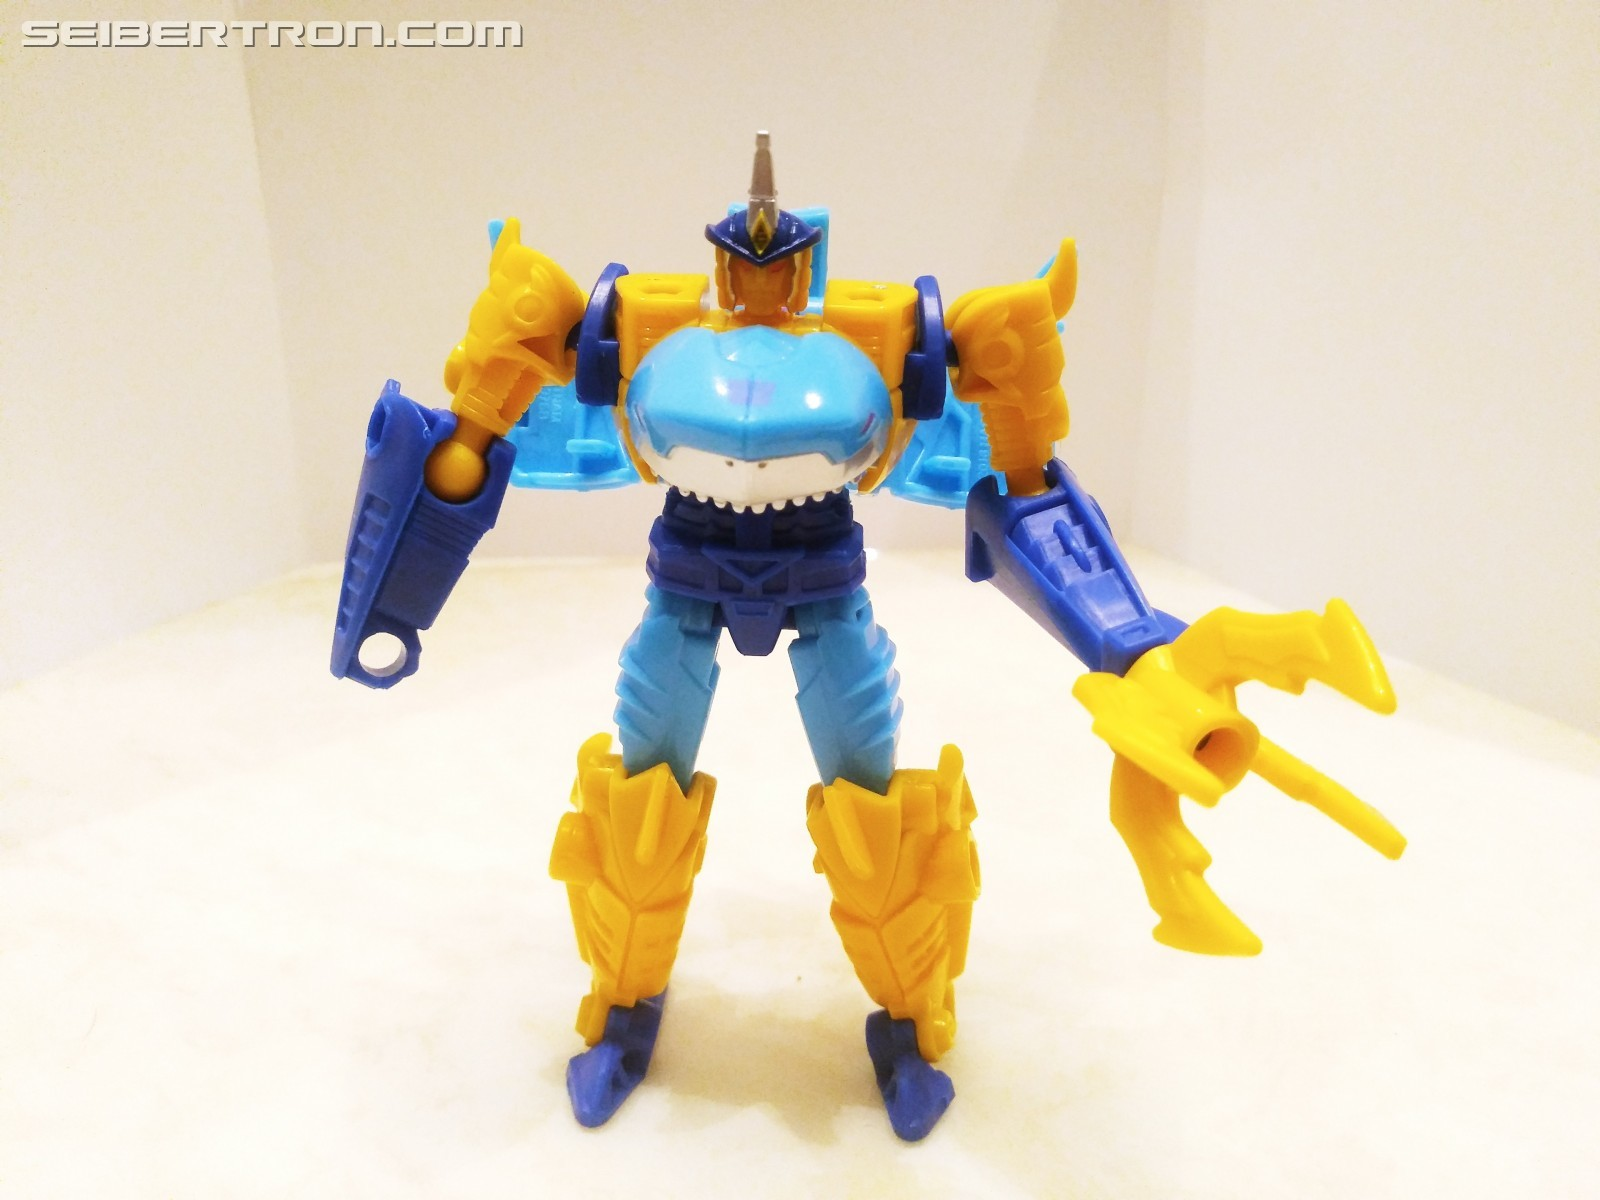 Transformers News: Pictorial Review of New Skybyte Toy from Transformers Cyberverse Spark Armor Battle Class